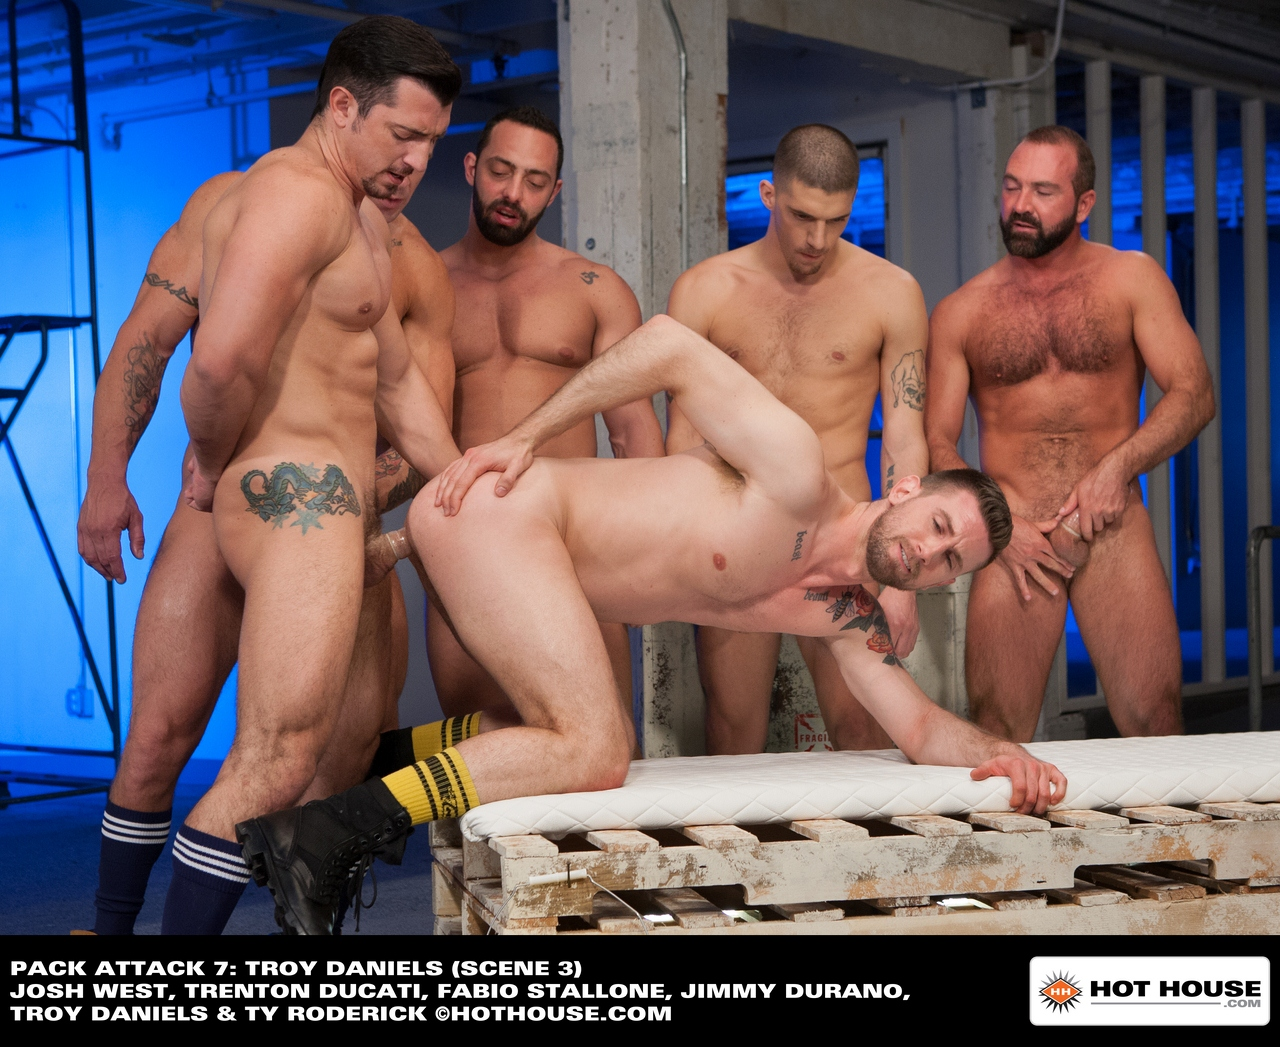 Hot House – Pack Attack 7: Troy Daniels (Scene 3)